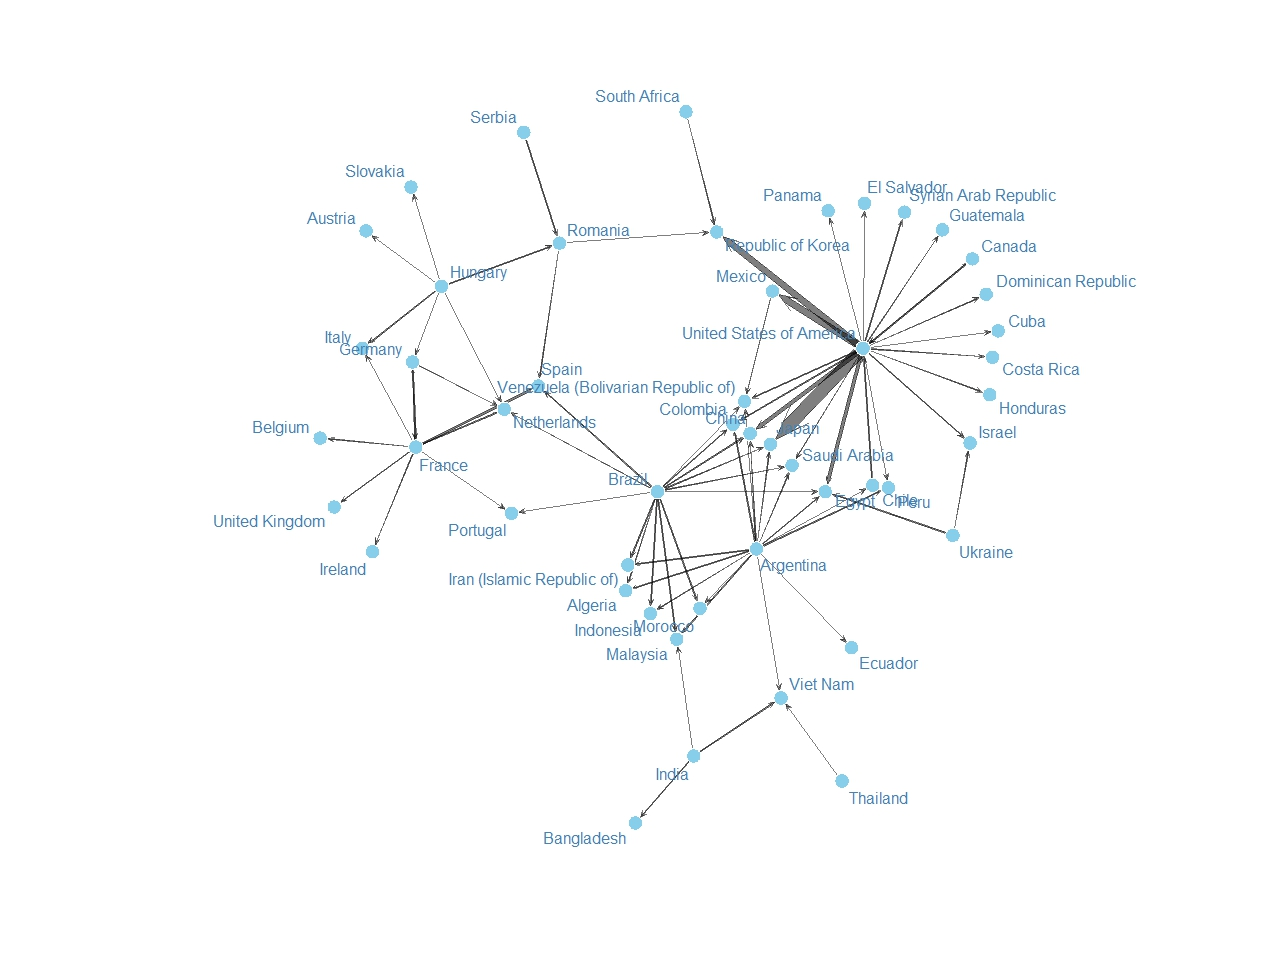 Maize Trade Part I Generate The Network Diagram